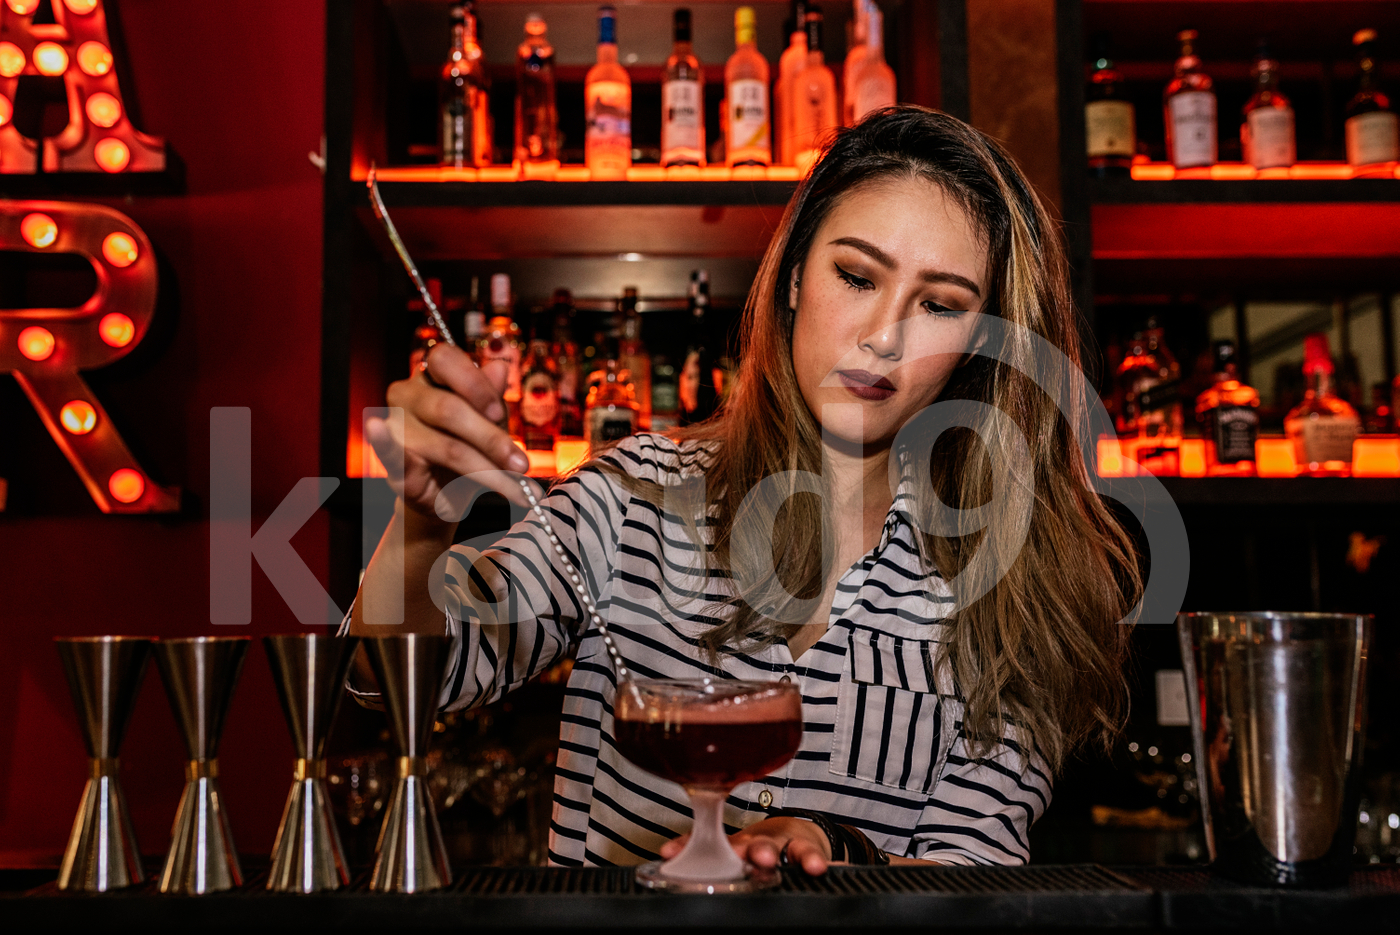 Asian bartender stirring drink using bar spoon